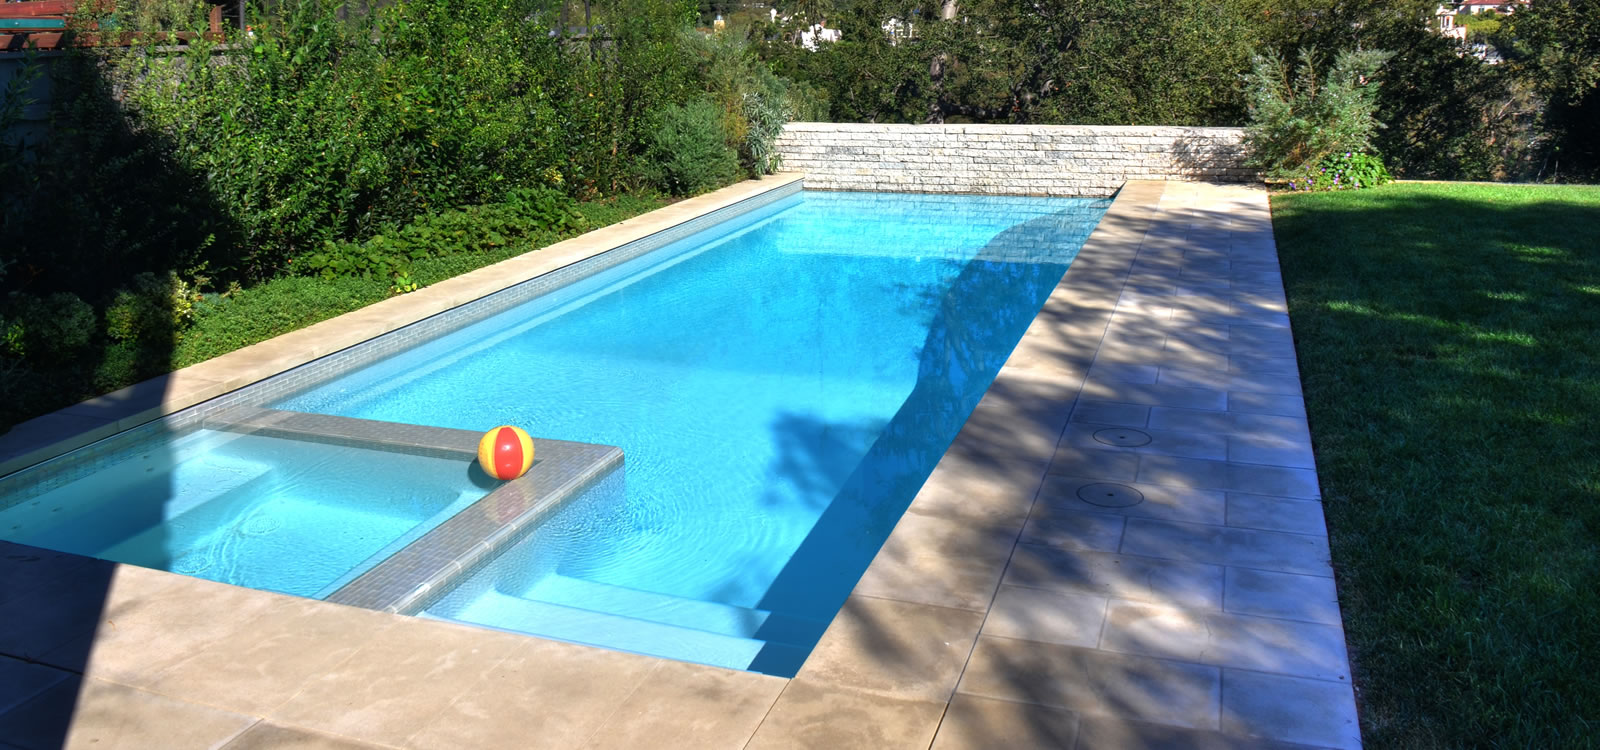 Los angeles pool spa design with bbq island and fire for Pool design los angeles